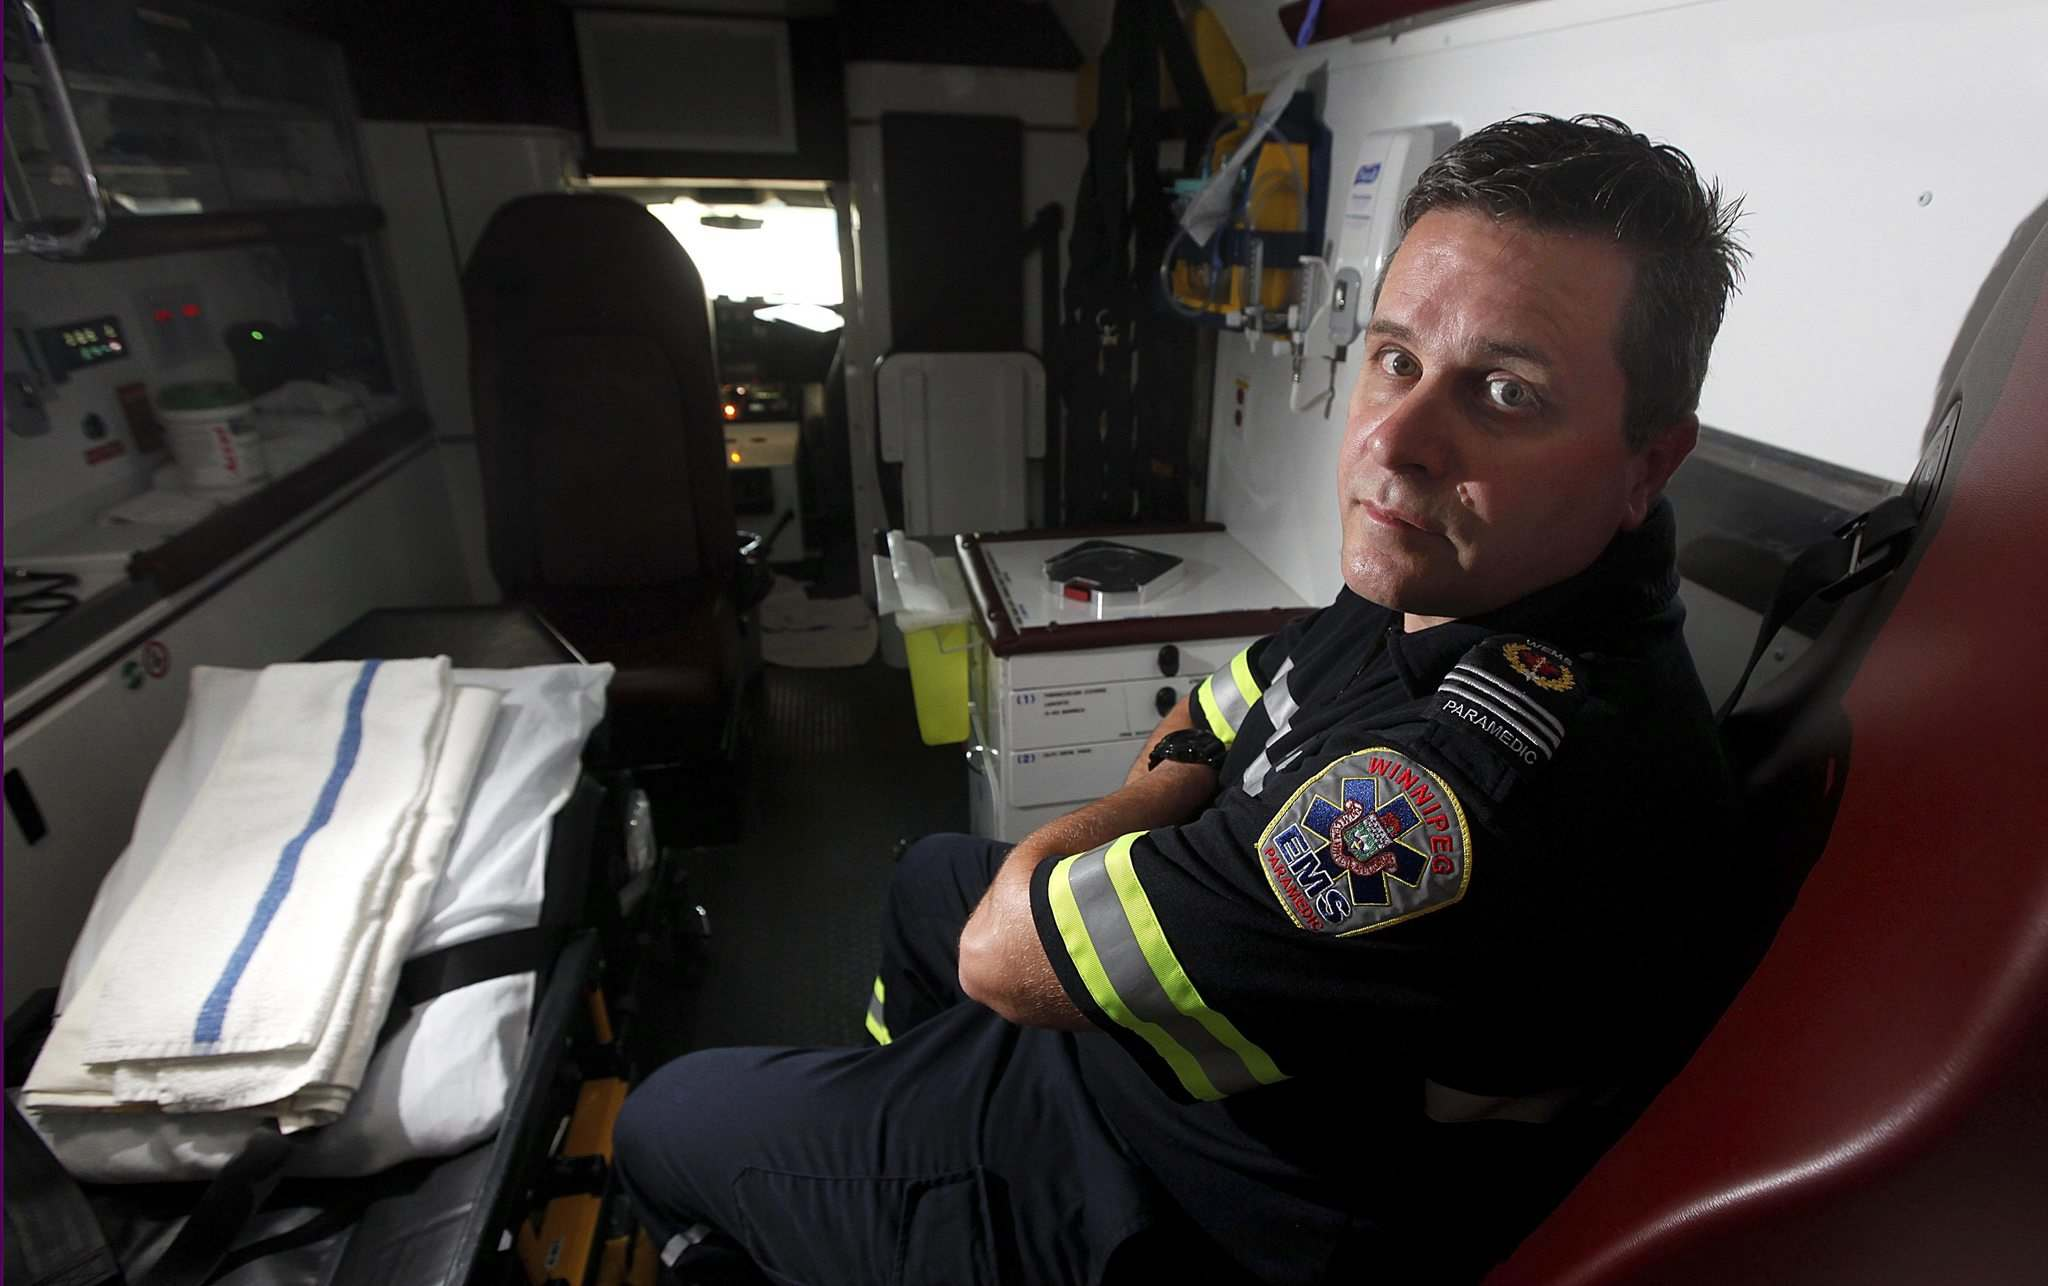 Kevin Martin, a city paramedic is back at work after dealing with PTSD.